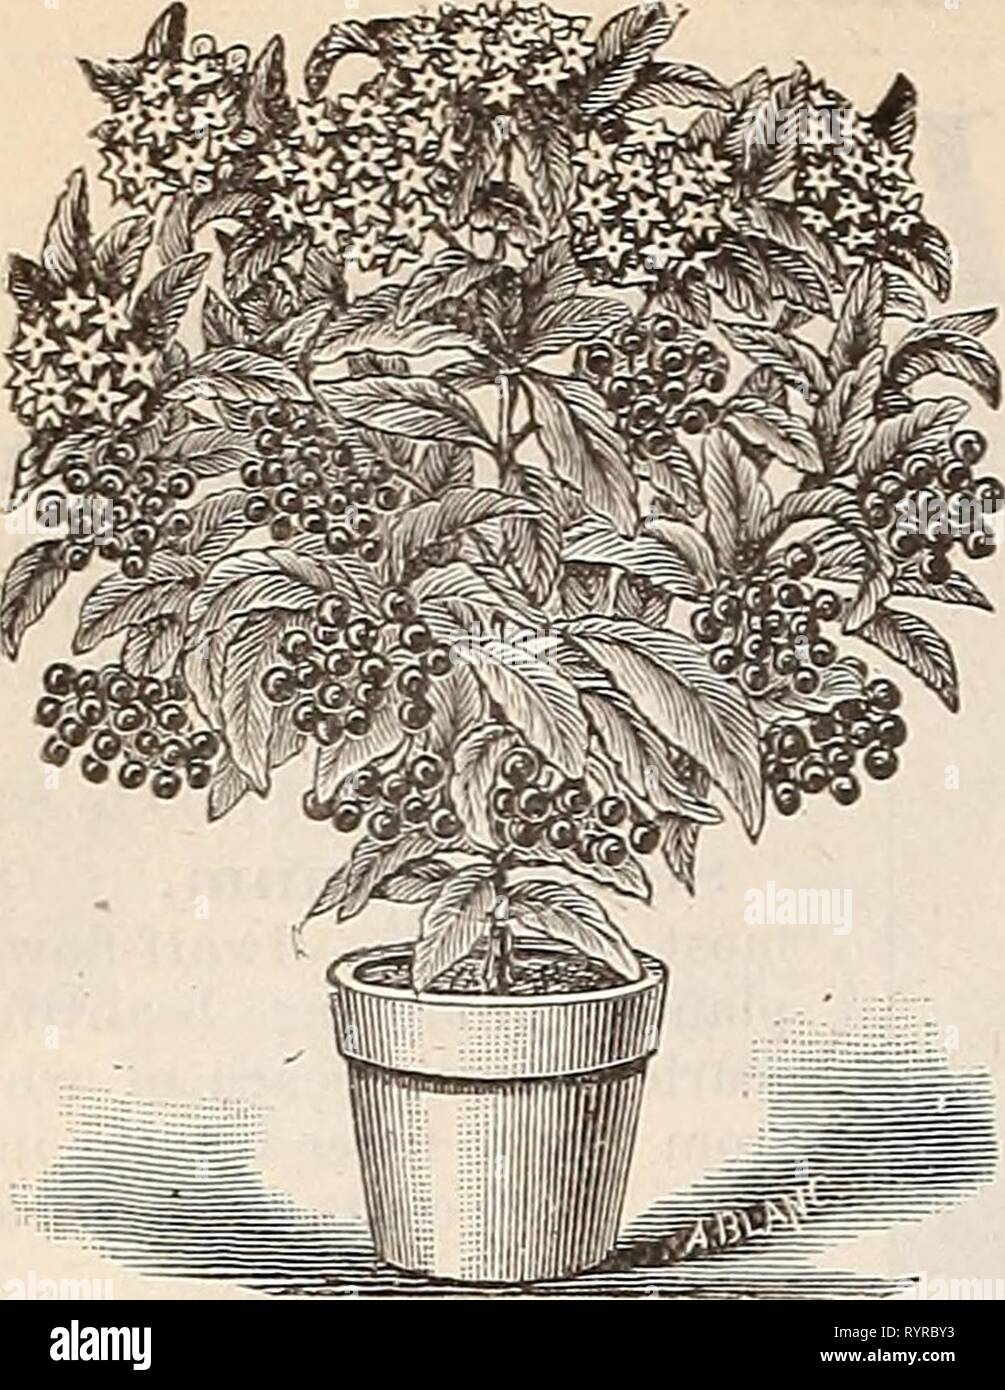 Dreer's mid-summer list, strawberry plants, Dreer's mid-summer list, strawberry plants, celery and other seasonable plants, seeds etc. : July 1896 August . dreersmidsummerl1896henr Year: 1896  14 DREER'S MID-SUMMER LIST.    Ardisia Crennlata. A very ornamental greenhouse plant, 'with dark ever- green foliage, producing clusters of brilliant red berries. A first-class house plant in winter. 50 to 75 cents each. - Stock Image